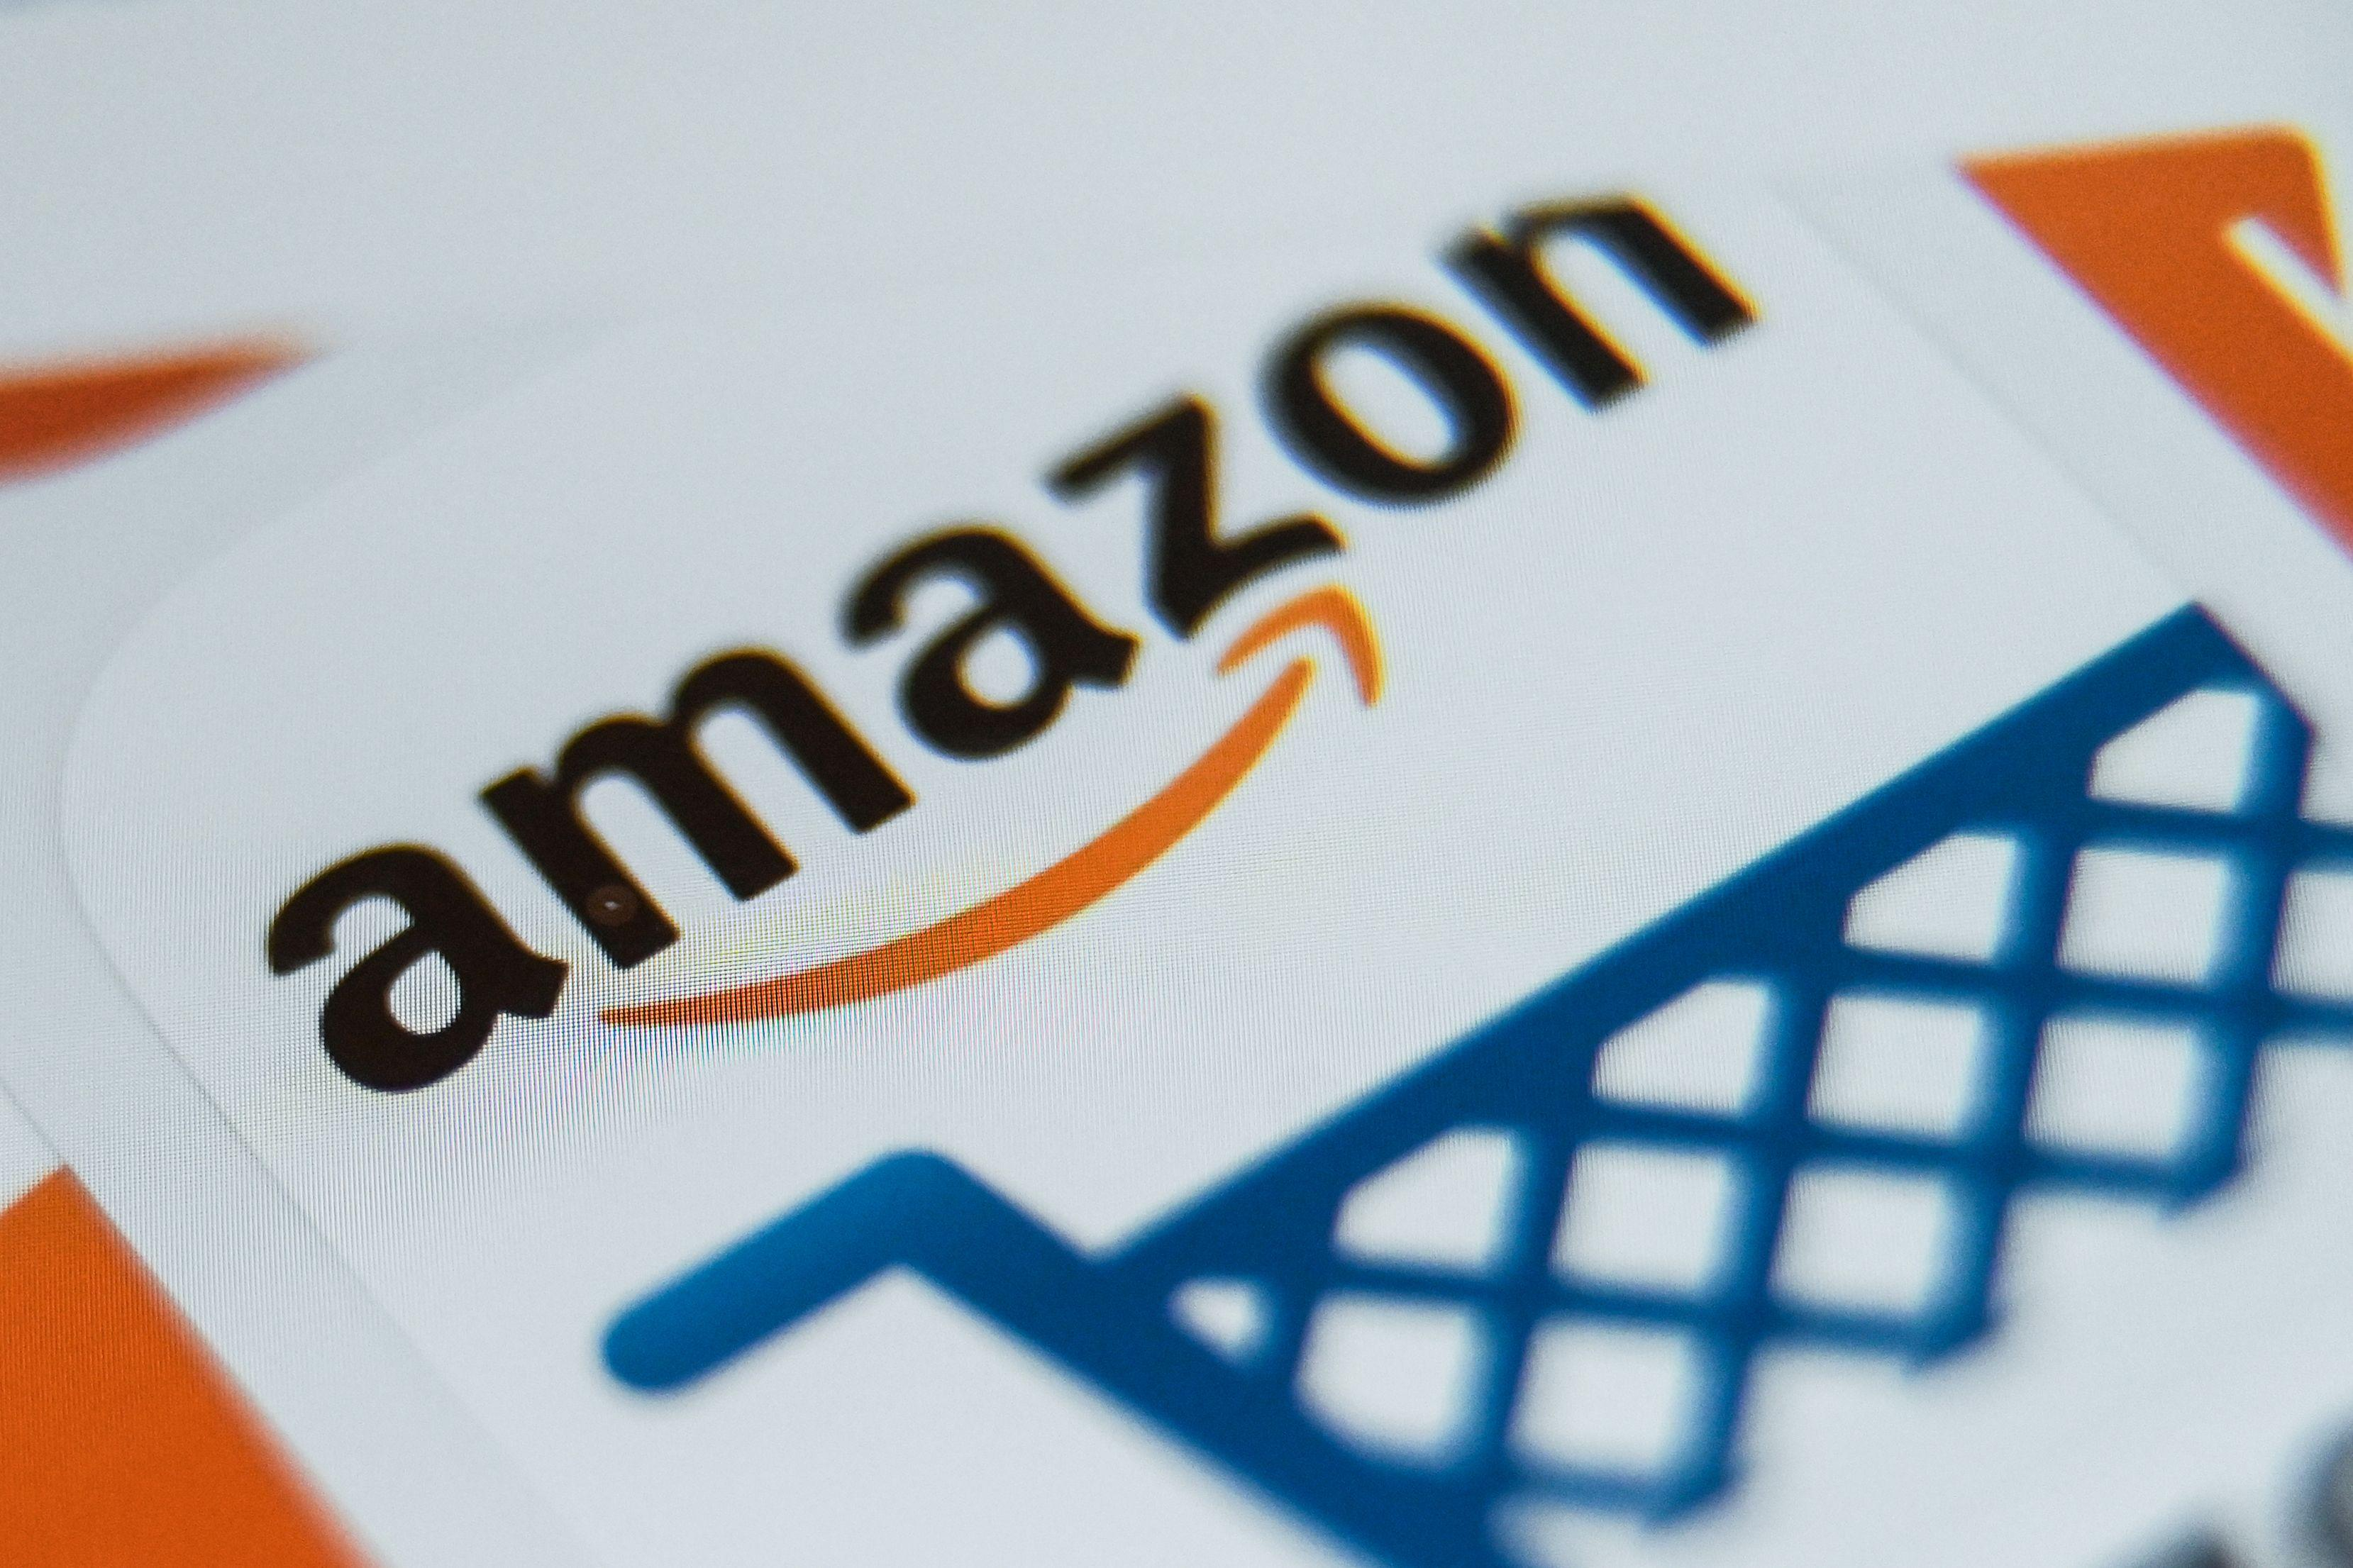 Amazon testing 'badges' to alert shoppers of new products